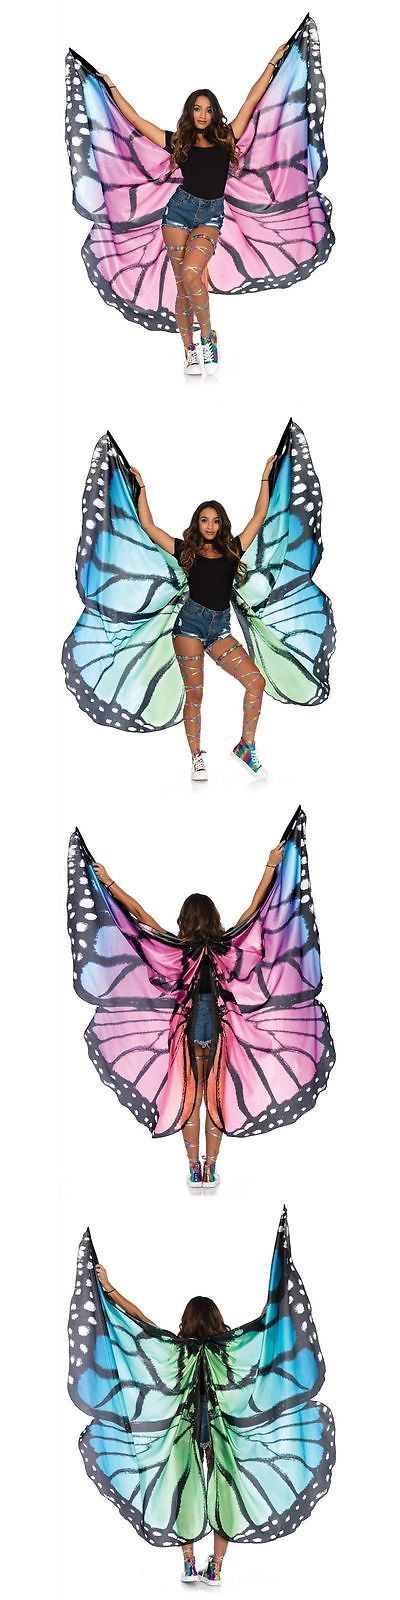 Wings Tails Ears and Noses 155351: Sexy Festival Wings Butterfly Rave Dance Show Wings With Sticks Support A2782 -> BUY IT NOW ONLY: $49.95 on eBay!